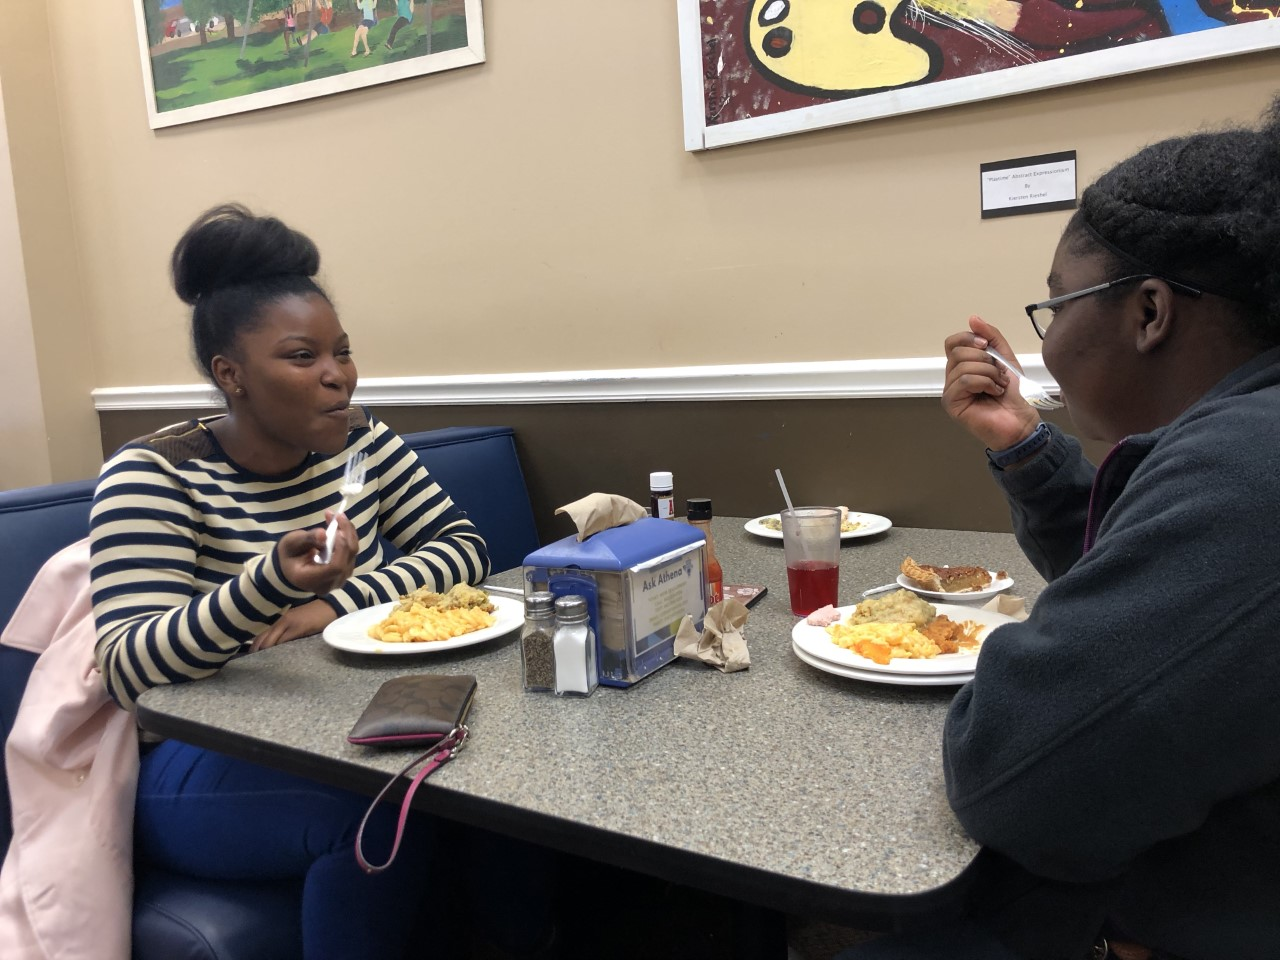 Juniors Tiwaniya Tyler and Binta Fadiga enjoy their meal together.